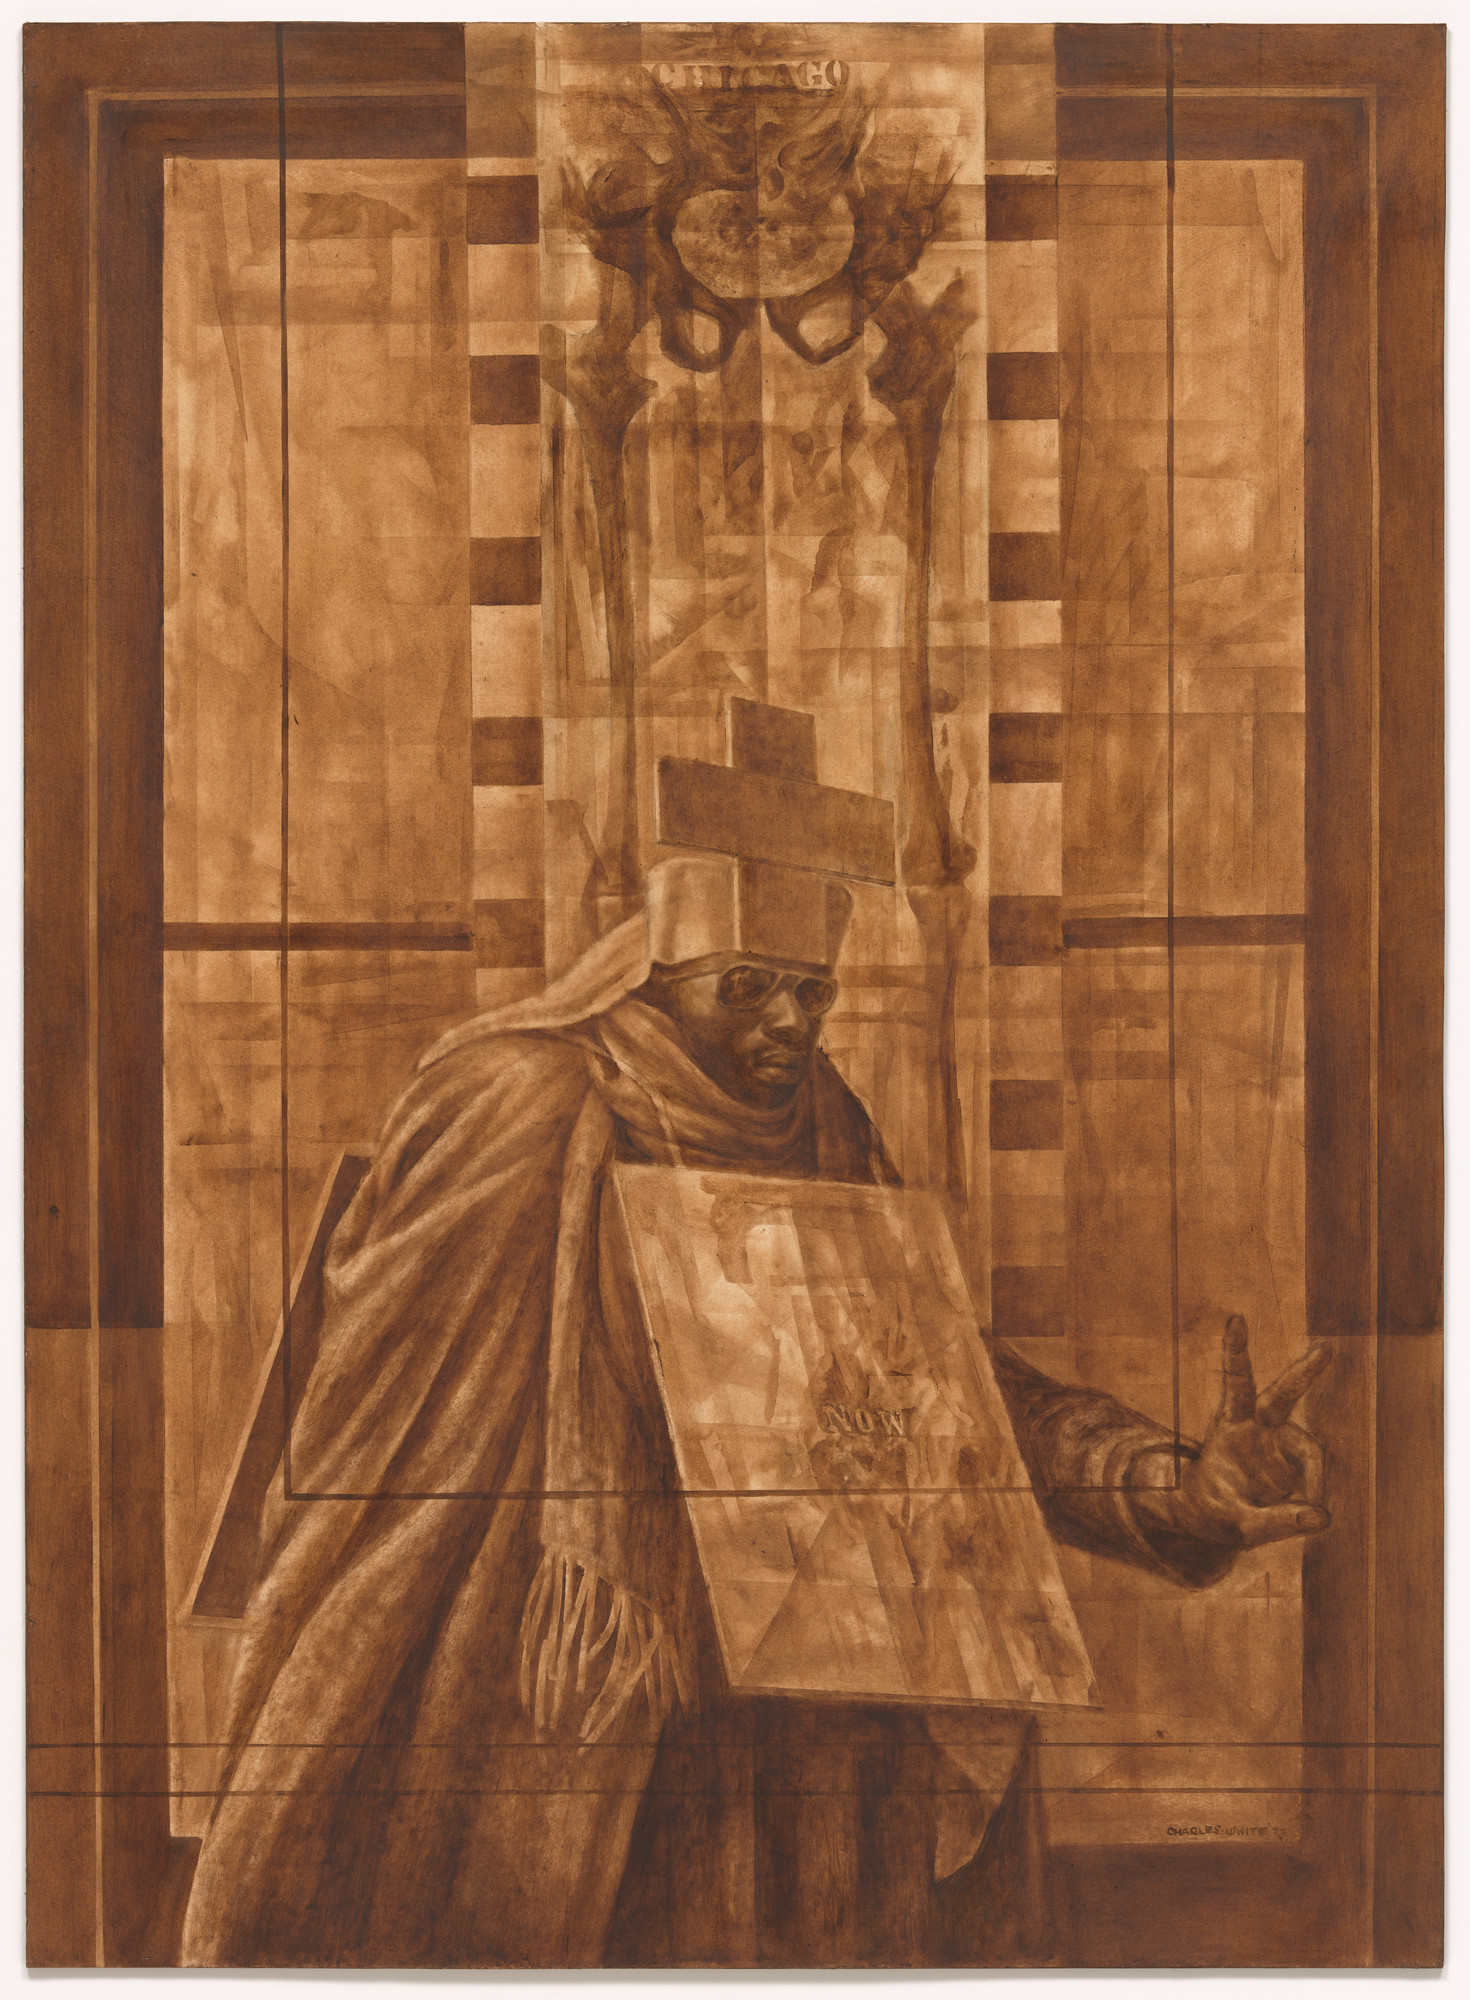 Charles White. _Black Pope (Sandwich Board Man)_. 1973. Oil wash on board, 60 x 43 7/8 (152.4 x 111.4 cm). The Museum of Modern Art, New York. Richard S. Zeisler Bequest (by exchange), The Friends of Education of The Museum of Modern Art, Committee on Drawings Fund, and Agnes Gund. © The Charles White Archives/ Digital Image © The Museum of Modern Art/ Licensed by SCALA/Art Resource, NY